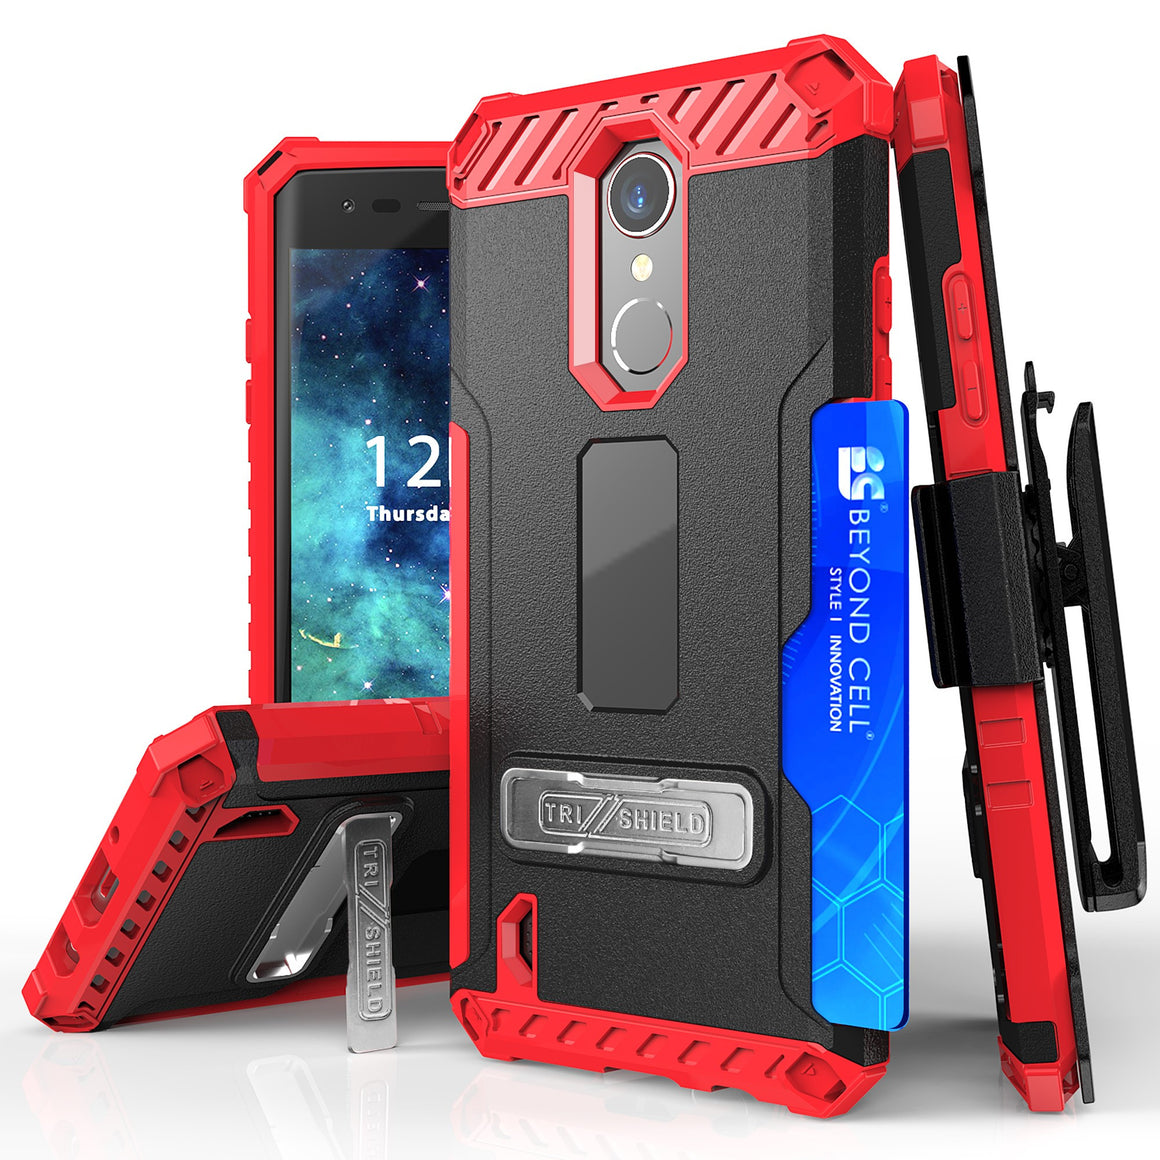 Tri Shield Combo For LG ARISTO/MS210/LV3/K8 (2017)/FORTUNE/RISIO 2 Black/Red TPU Case,Belt Clip Holster,Kickstand,Card Slot